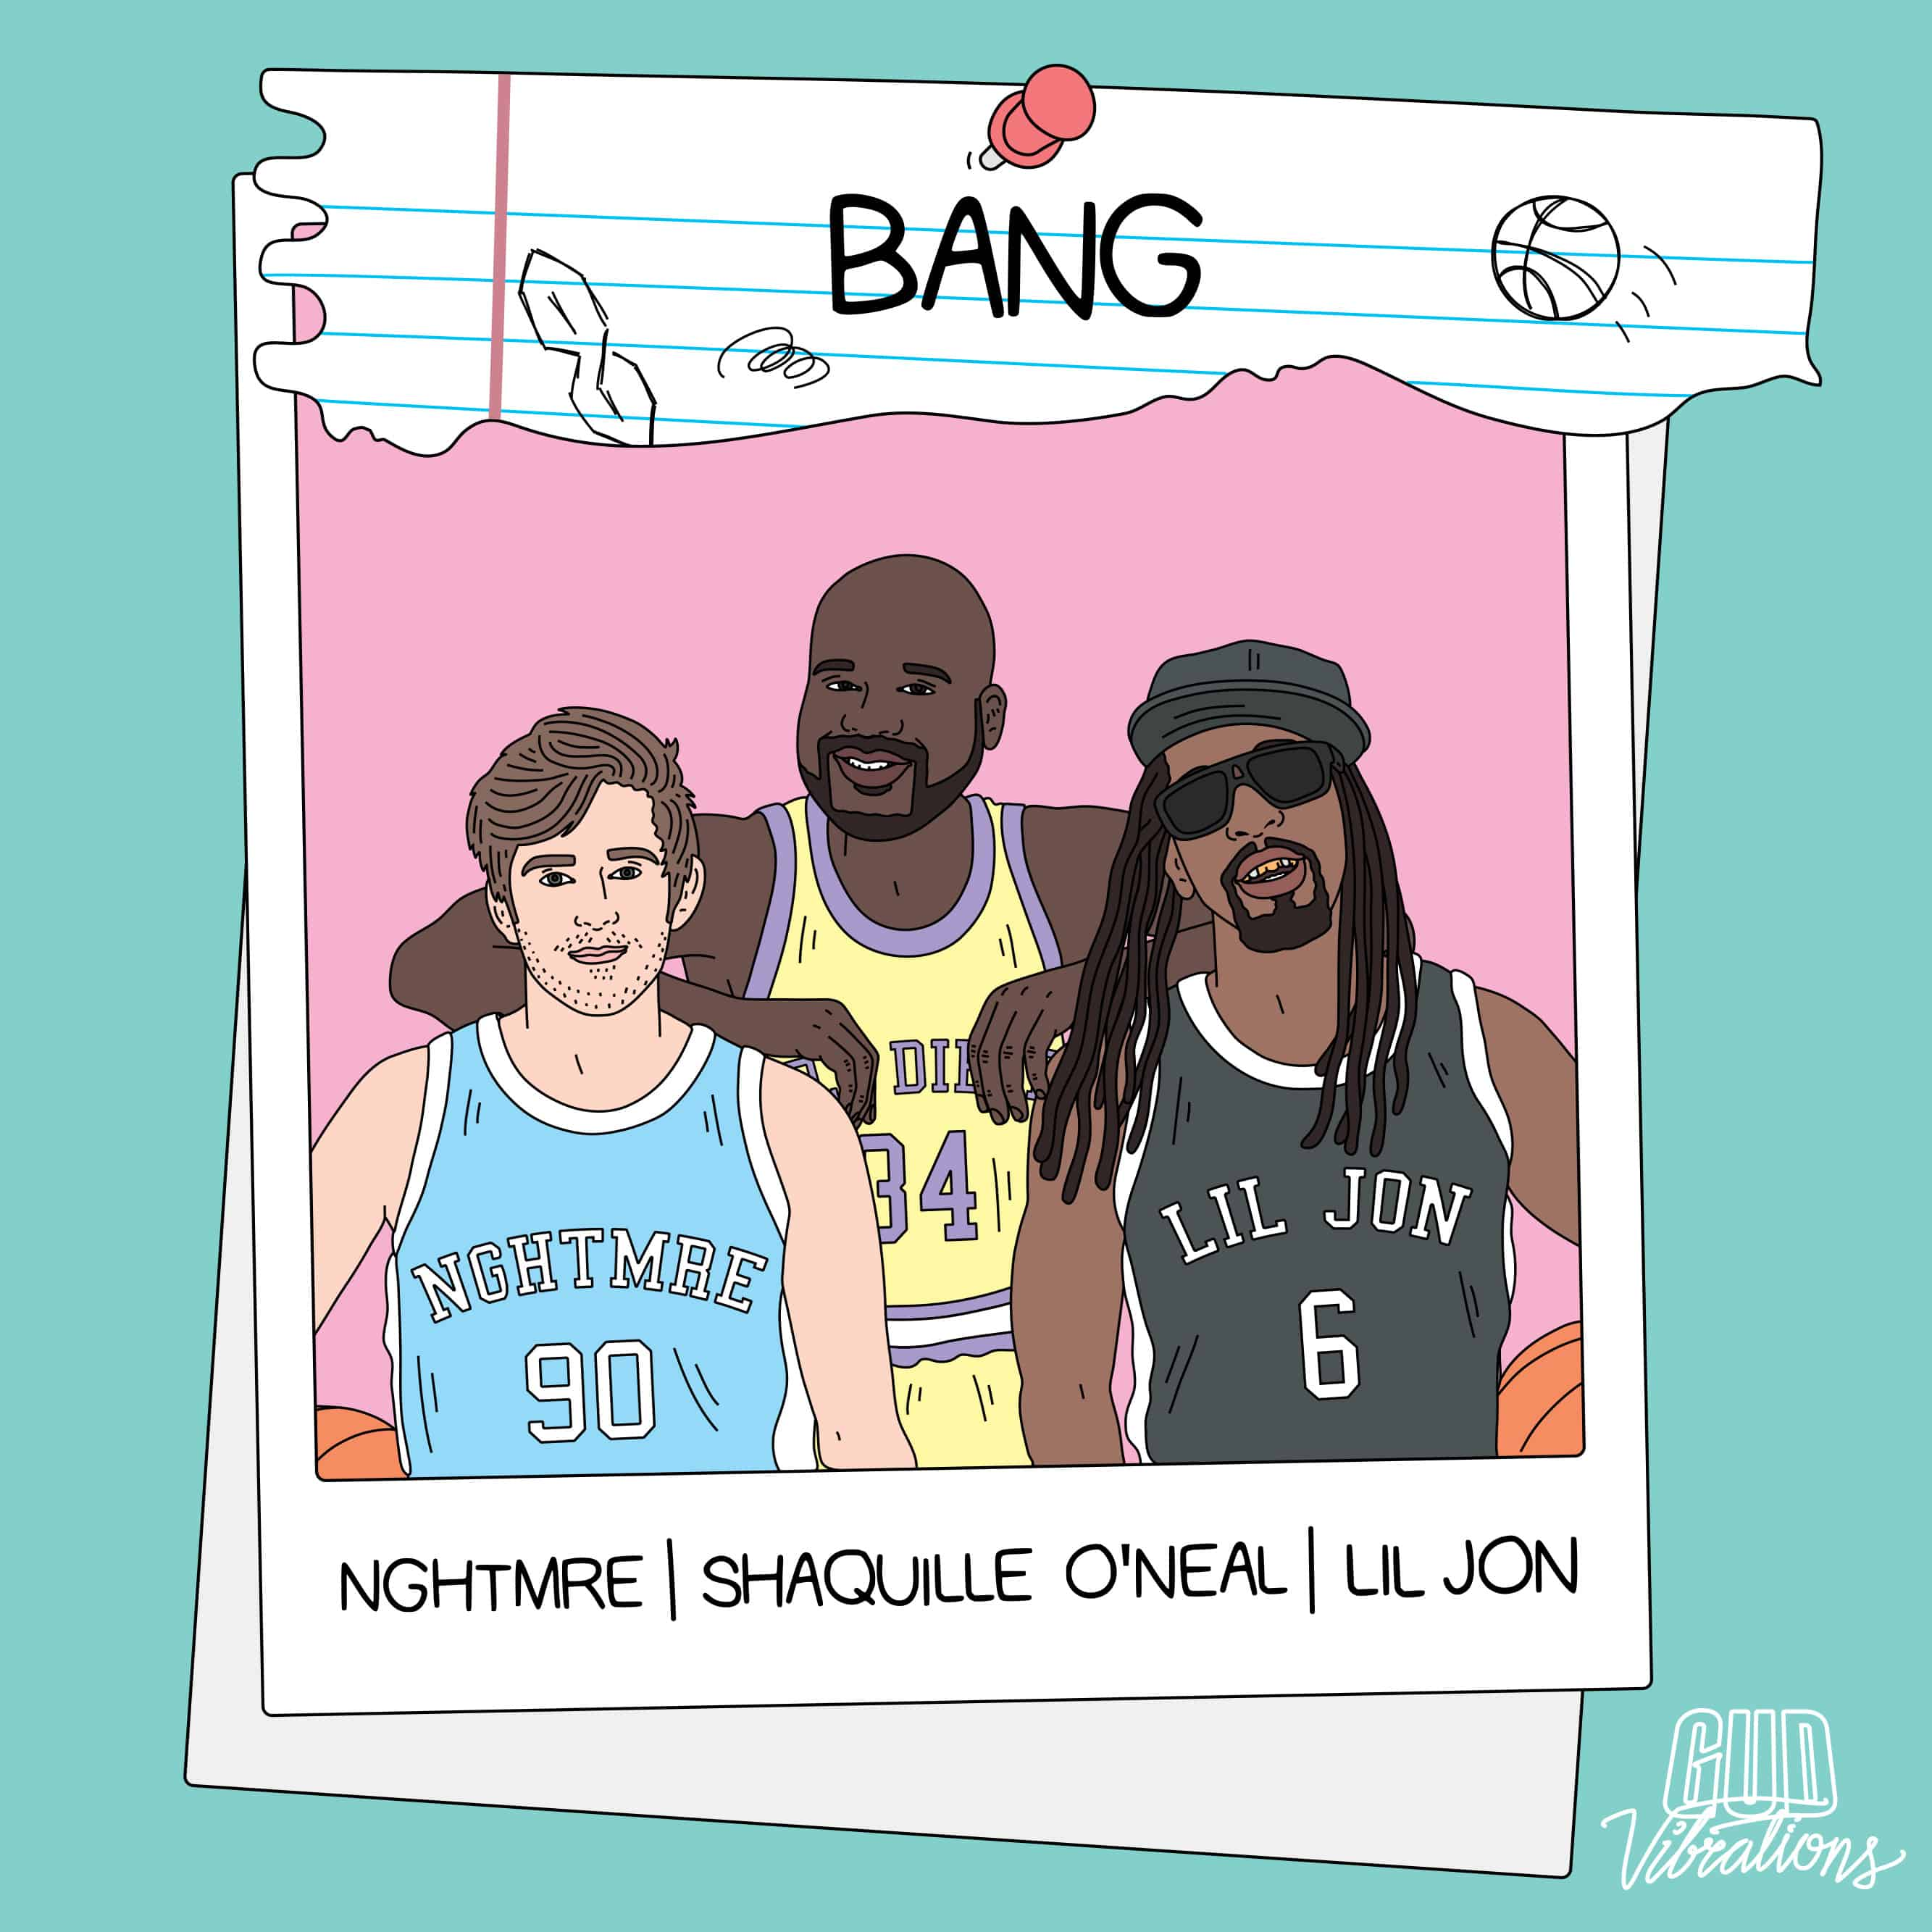 NGHTMRE, Shaquille O'Neal & Lil Jon release 'BANG'